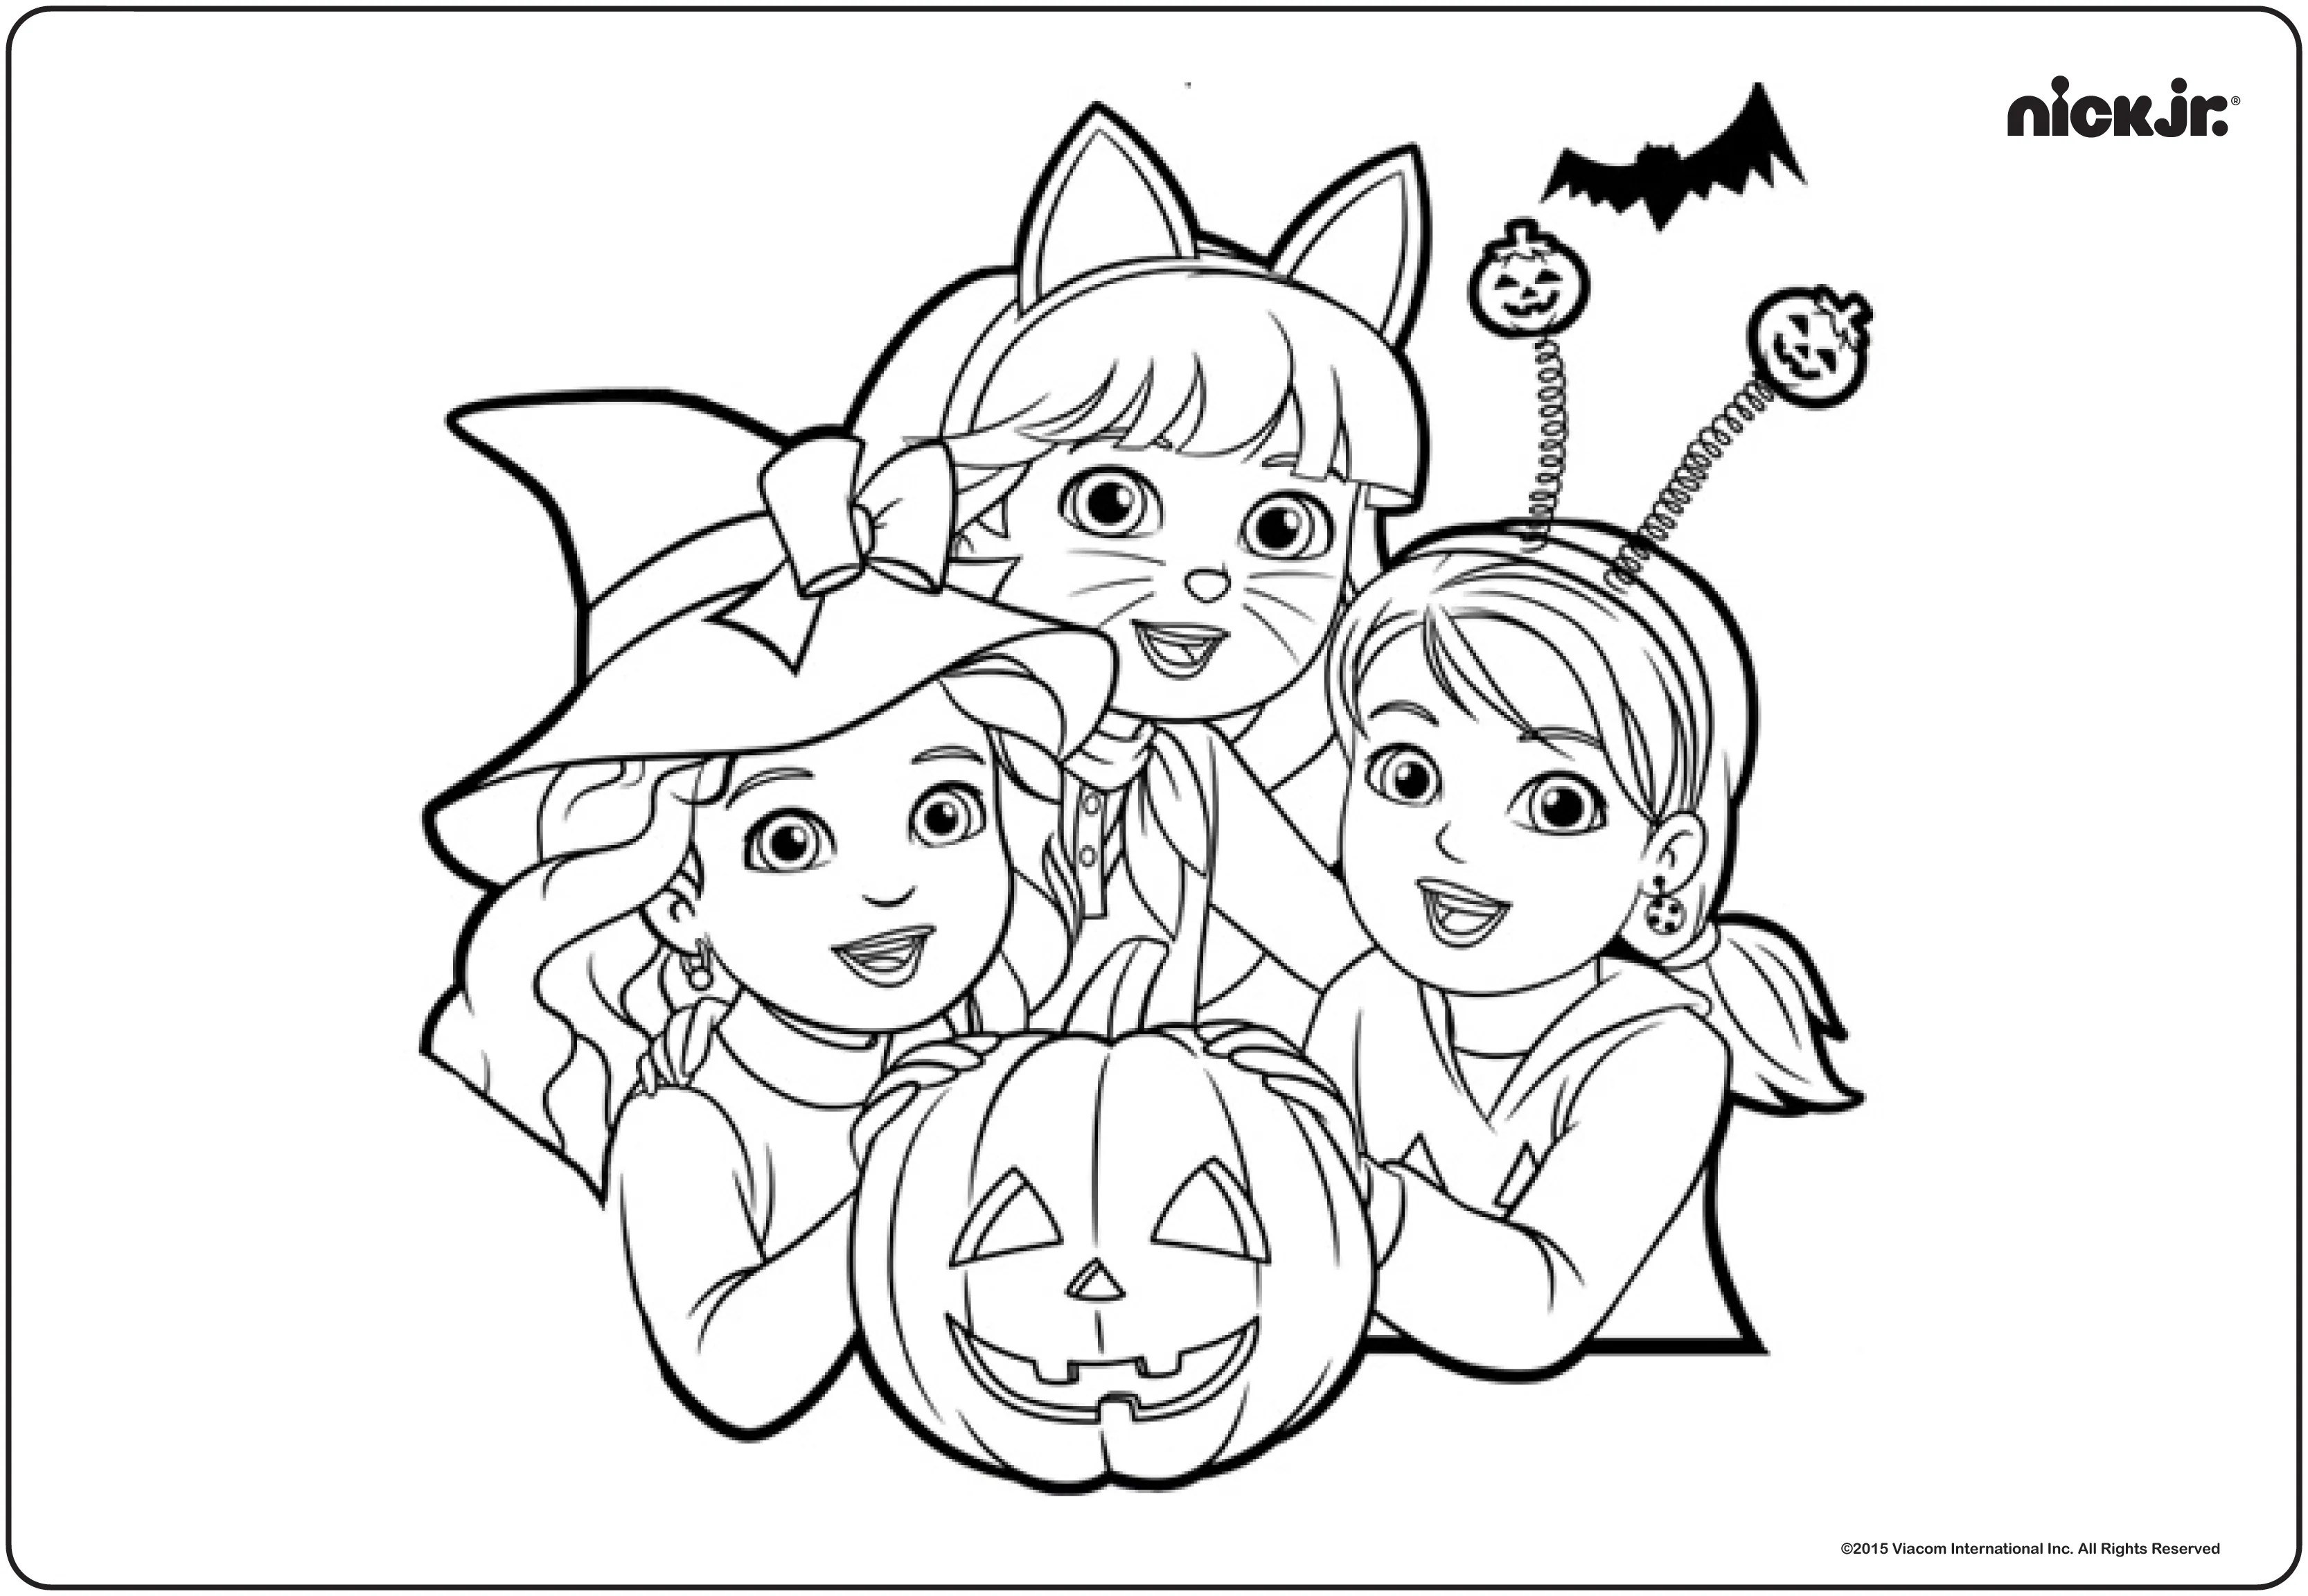 coloring pages nick jr - photo#24